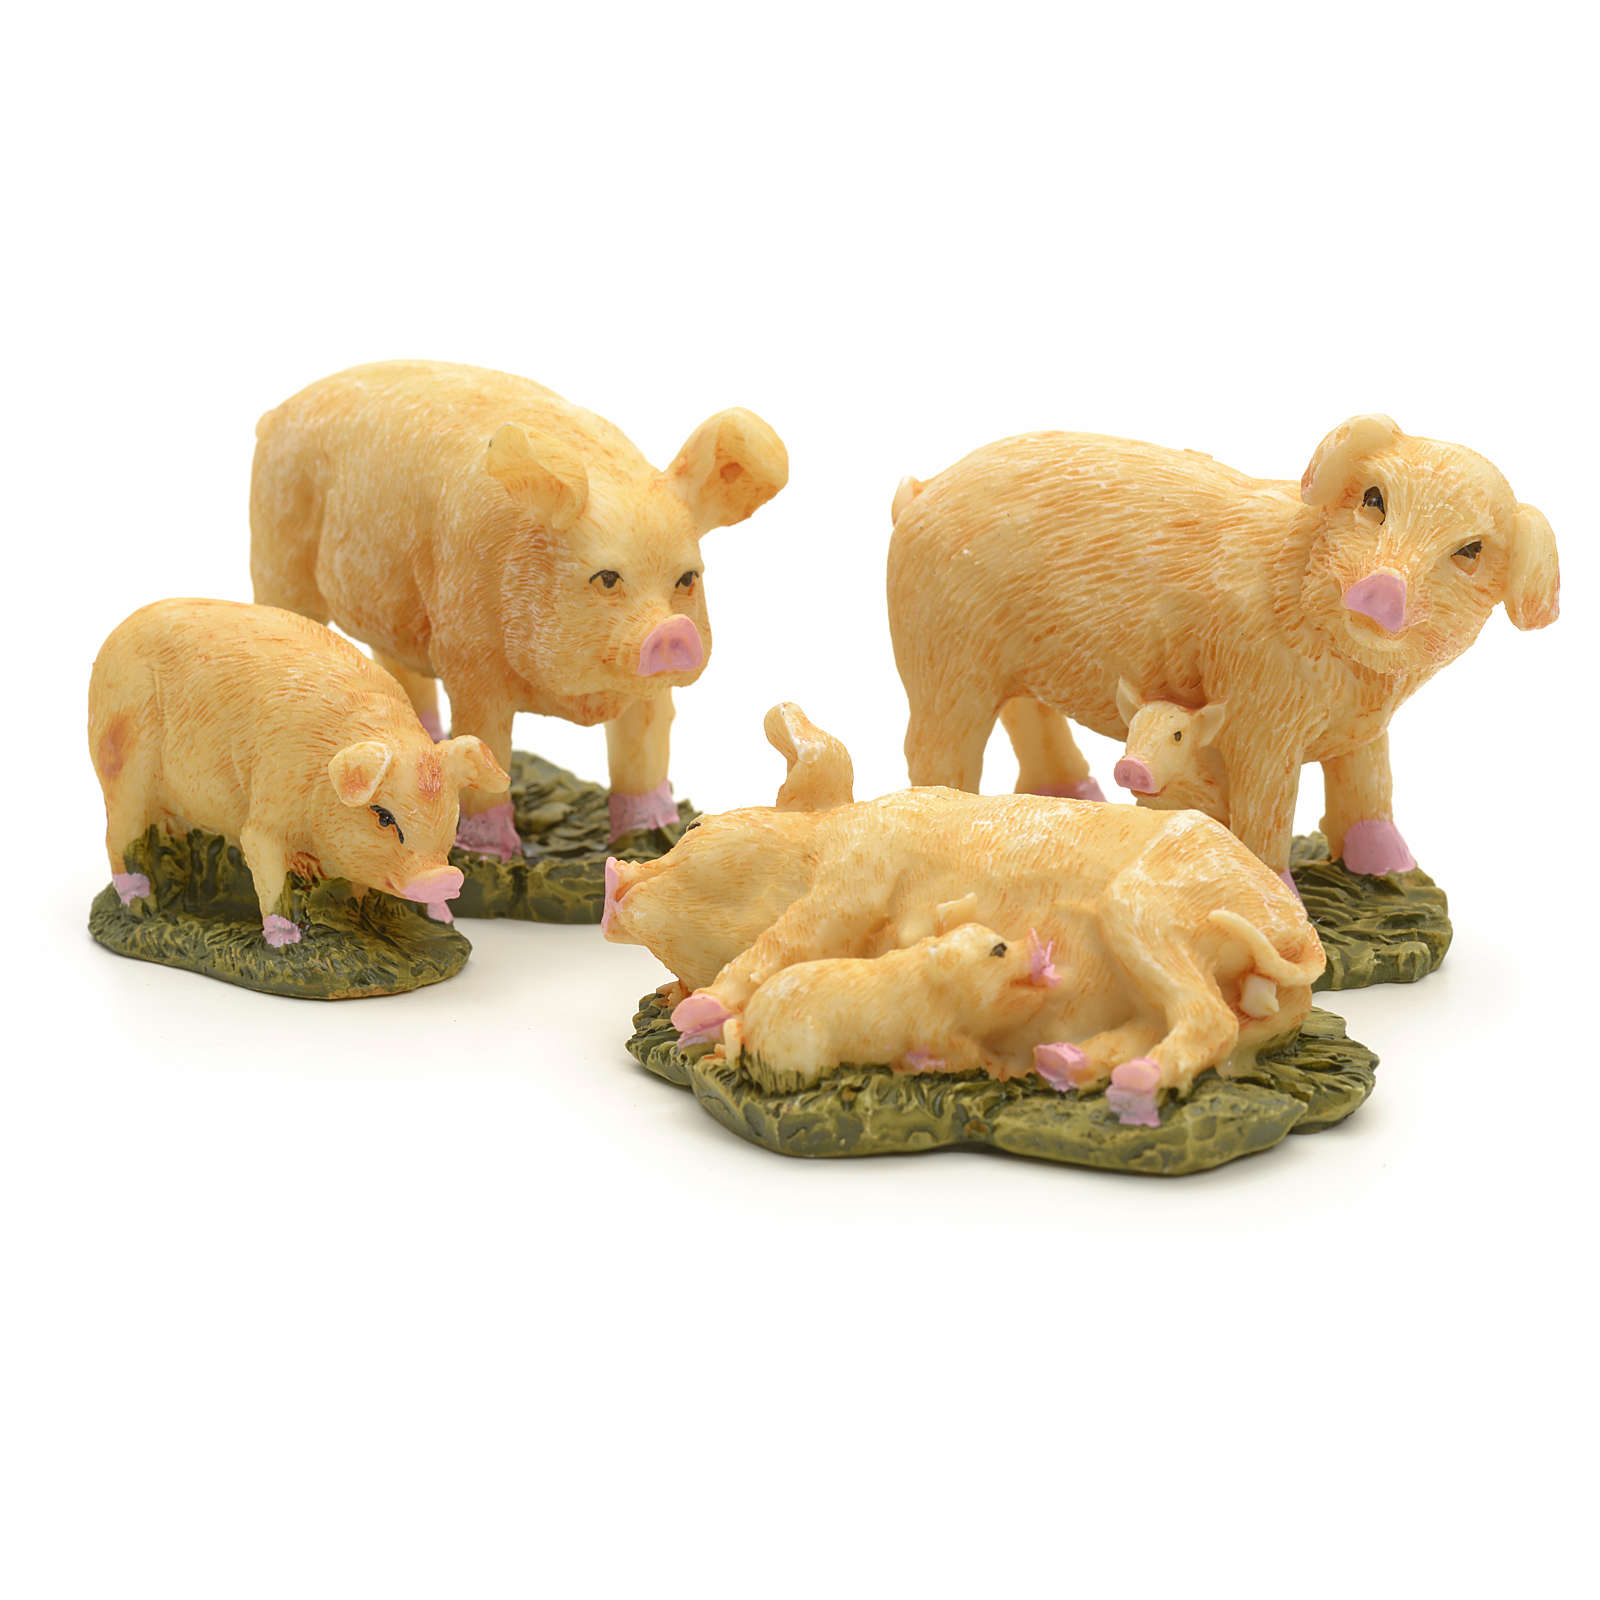 Nativity figurine, pigs 10 cm set of 4 pcs 3